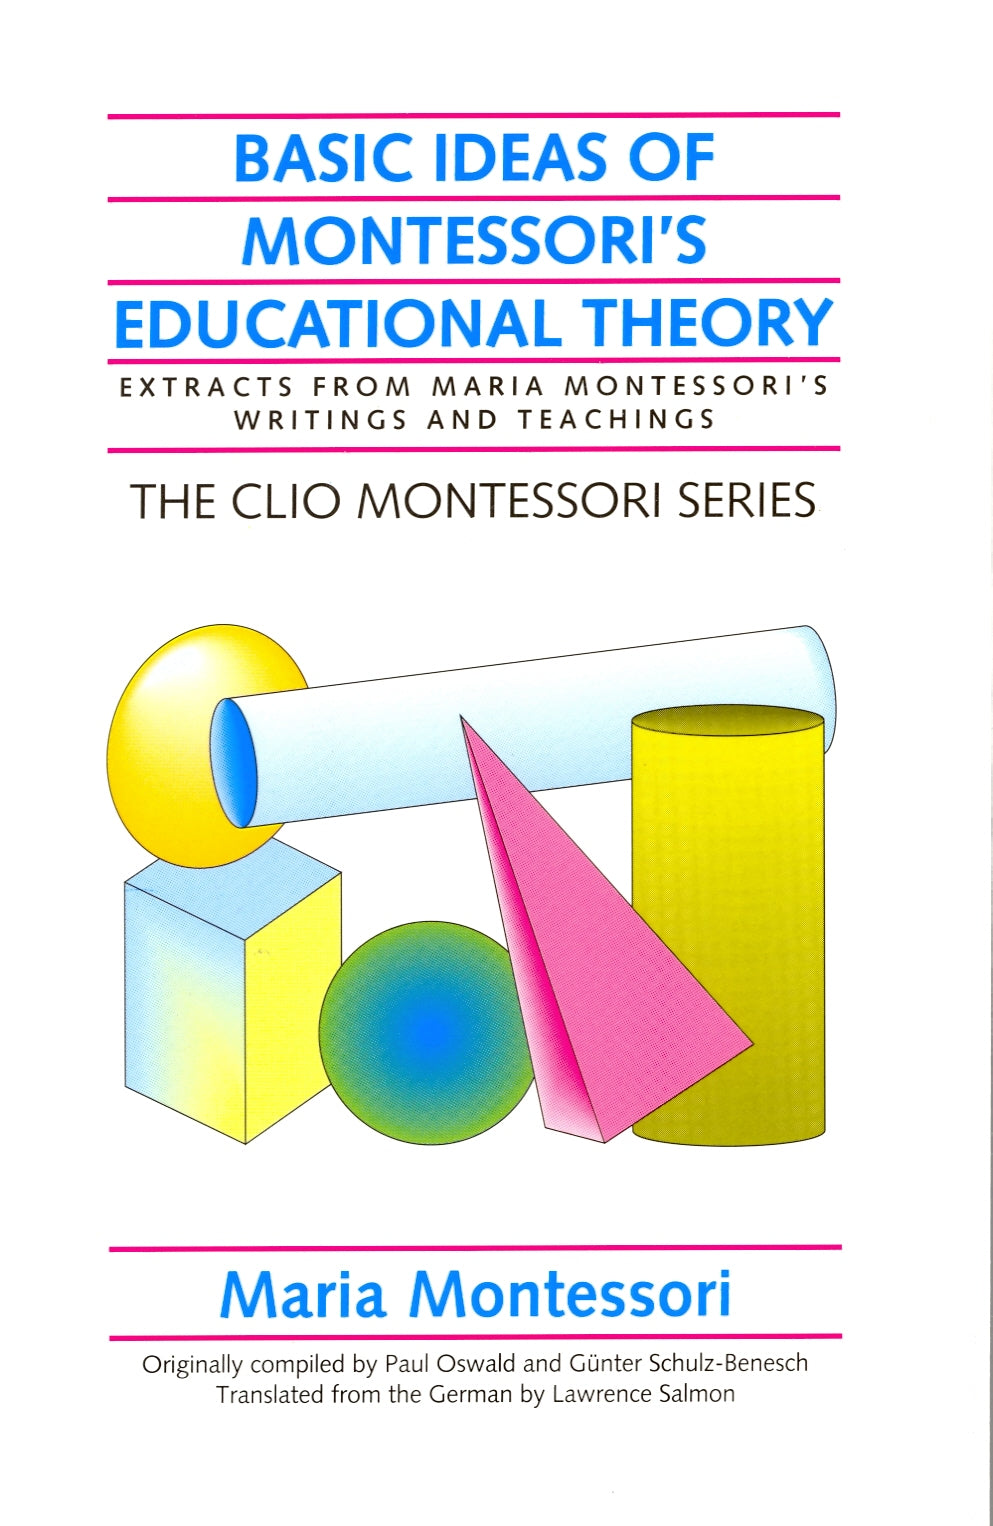 Basic Ideas of Montessori Education